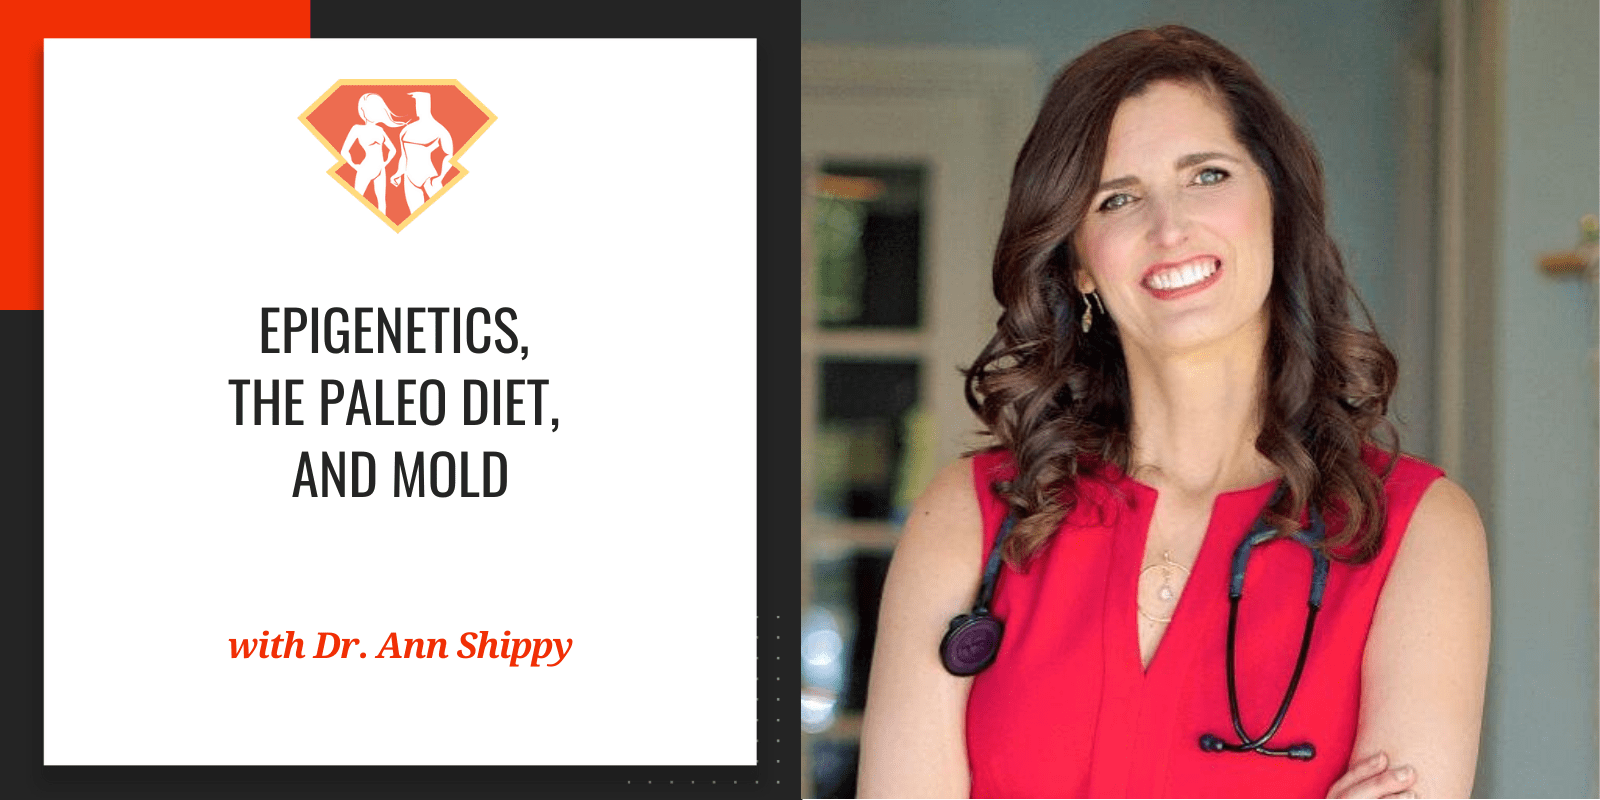 Dr. Ann Shippy On Epigenetics, The Paleo Diet, And Mold